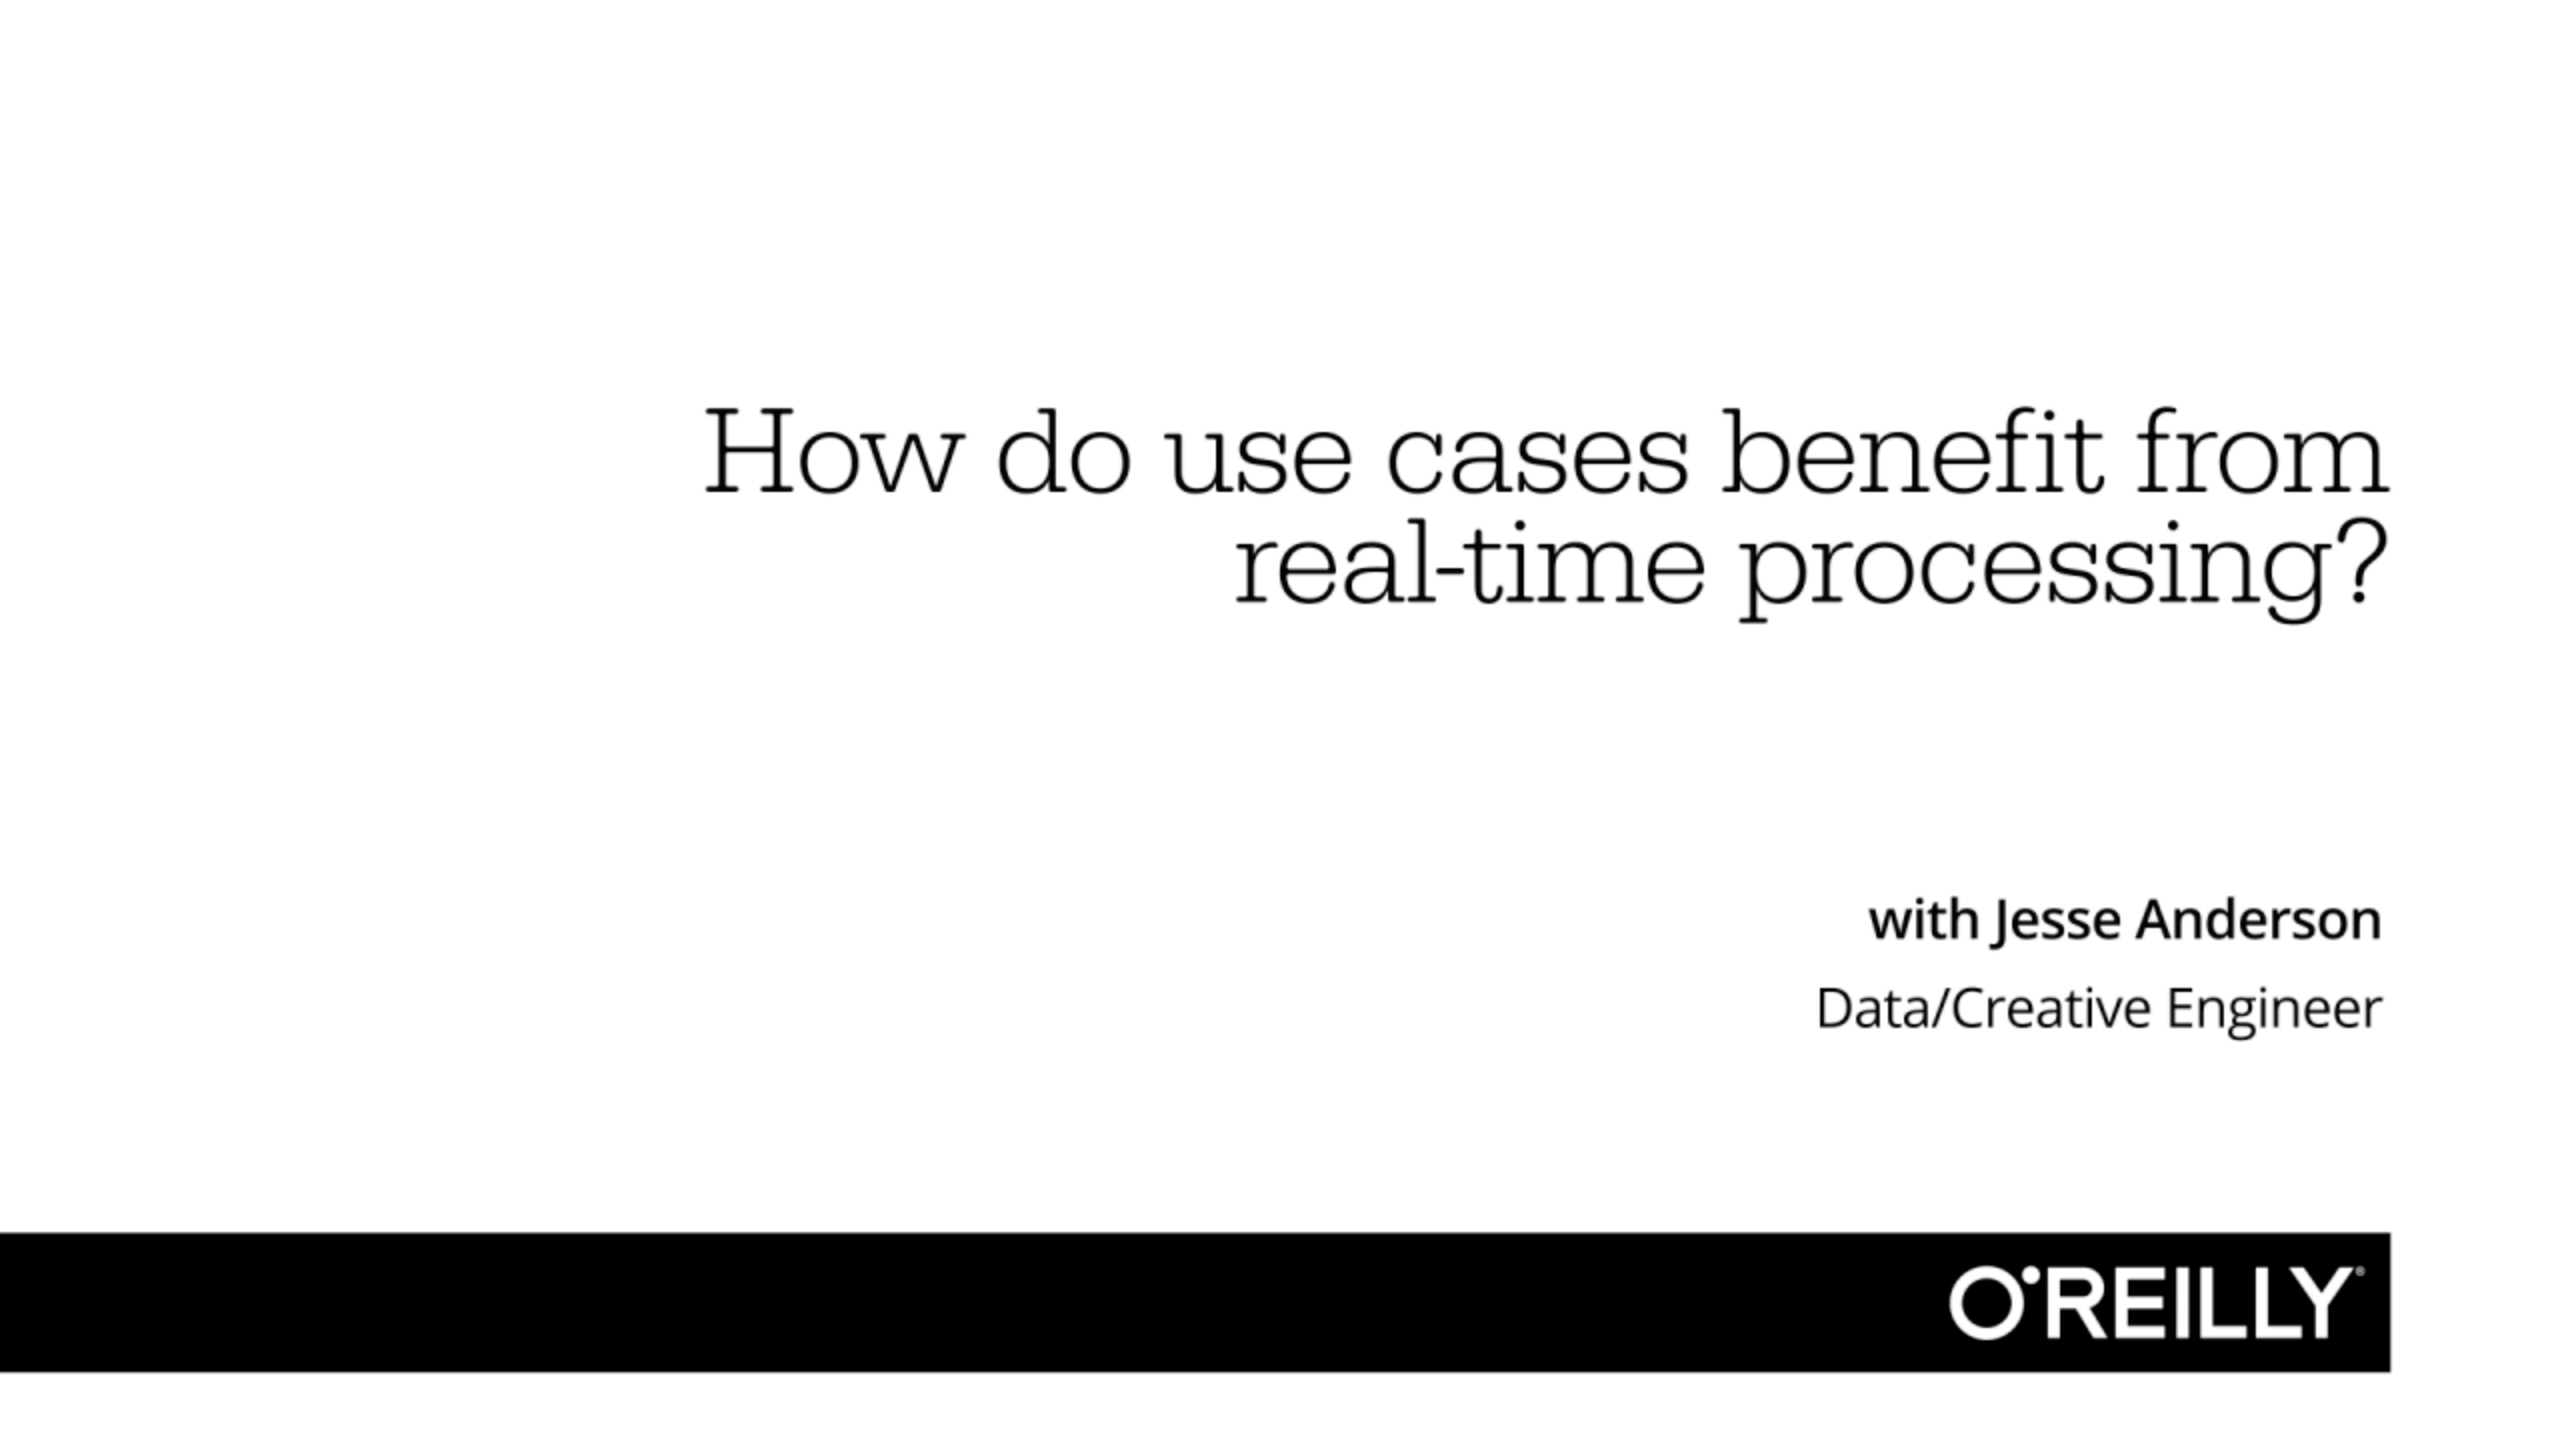 How do use cases benefit from real-time processing?